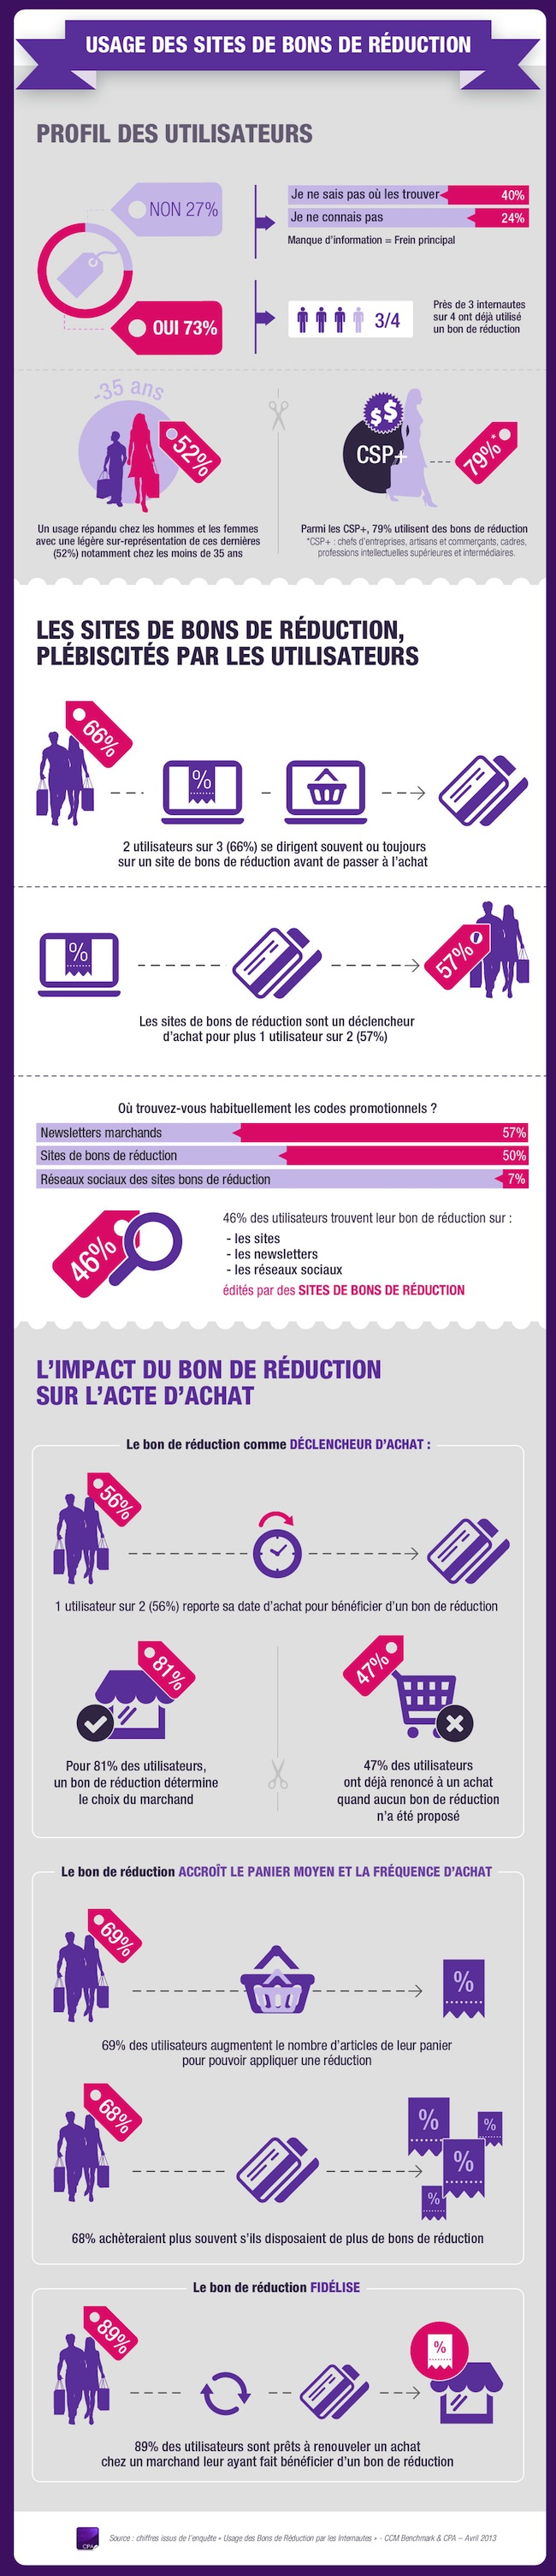 CPA_Usage_SBR_infographie